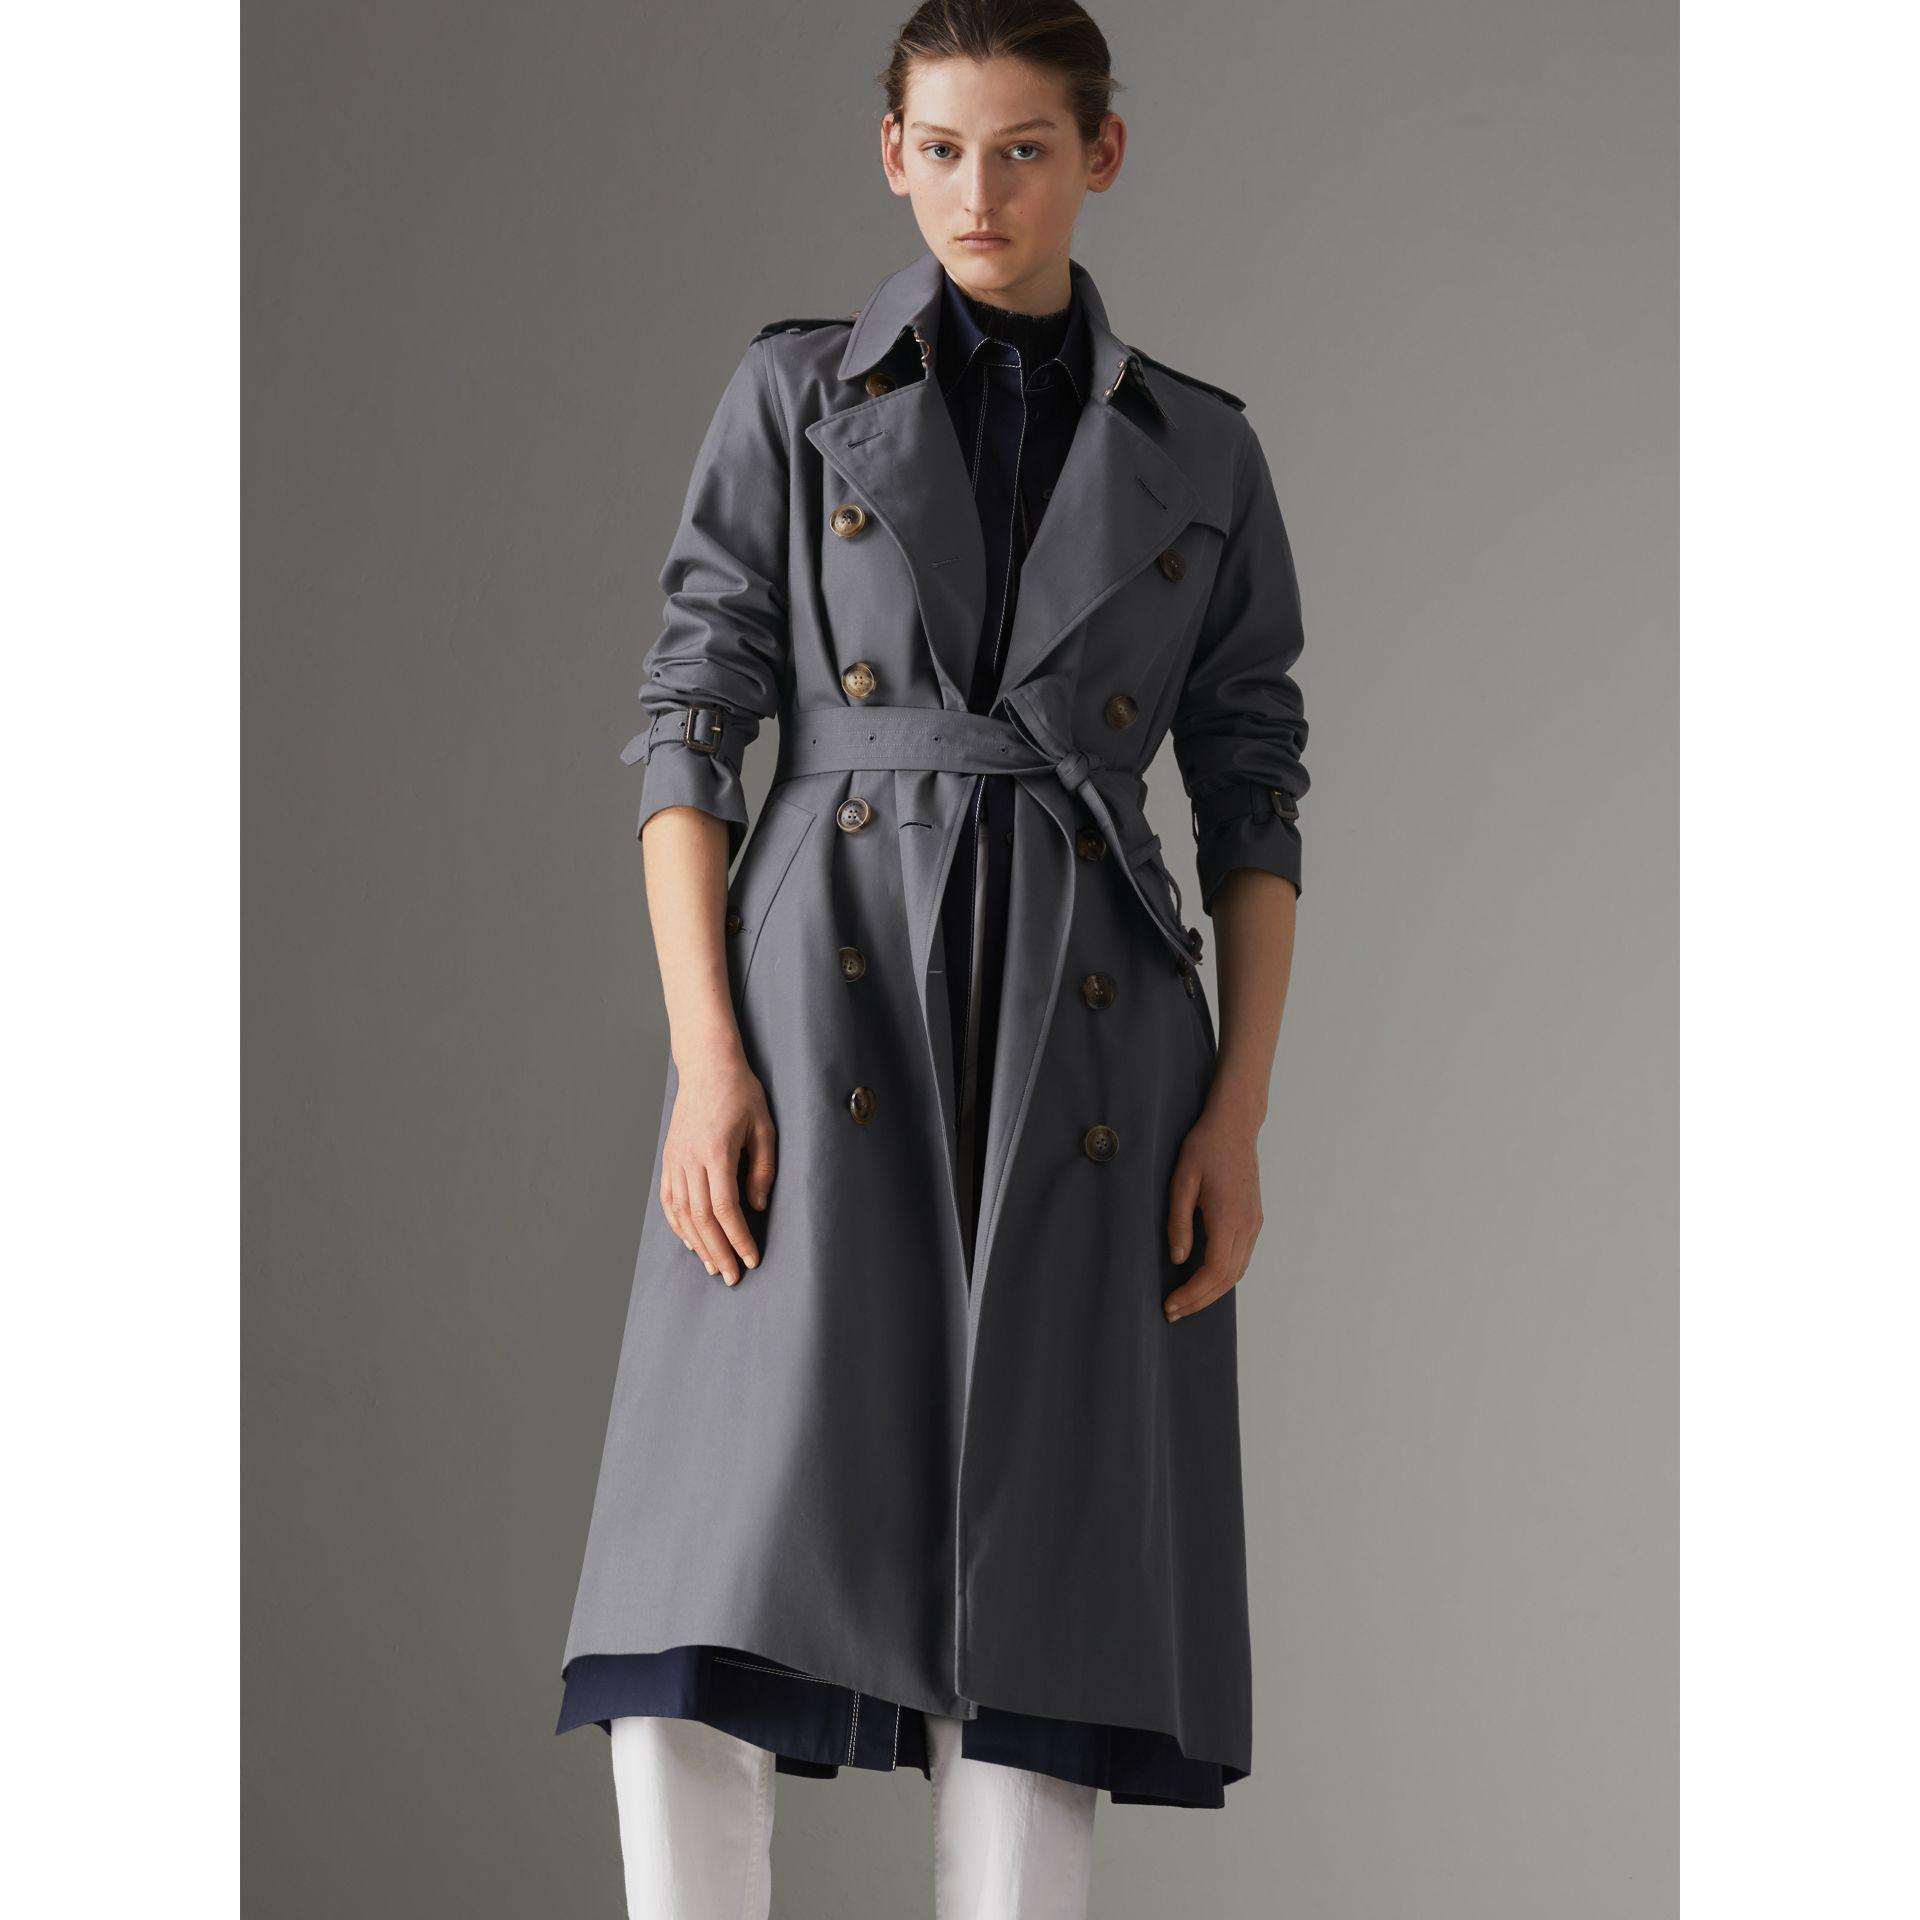 6281c0e6a0ef Burberry The Long Kensington Heritage Trench Coat In Mid Grey